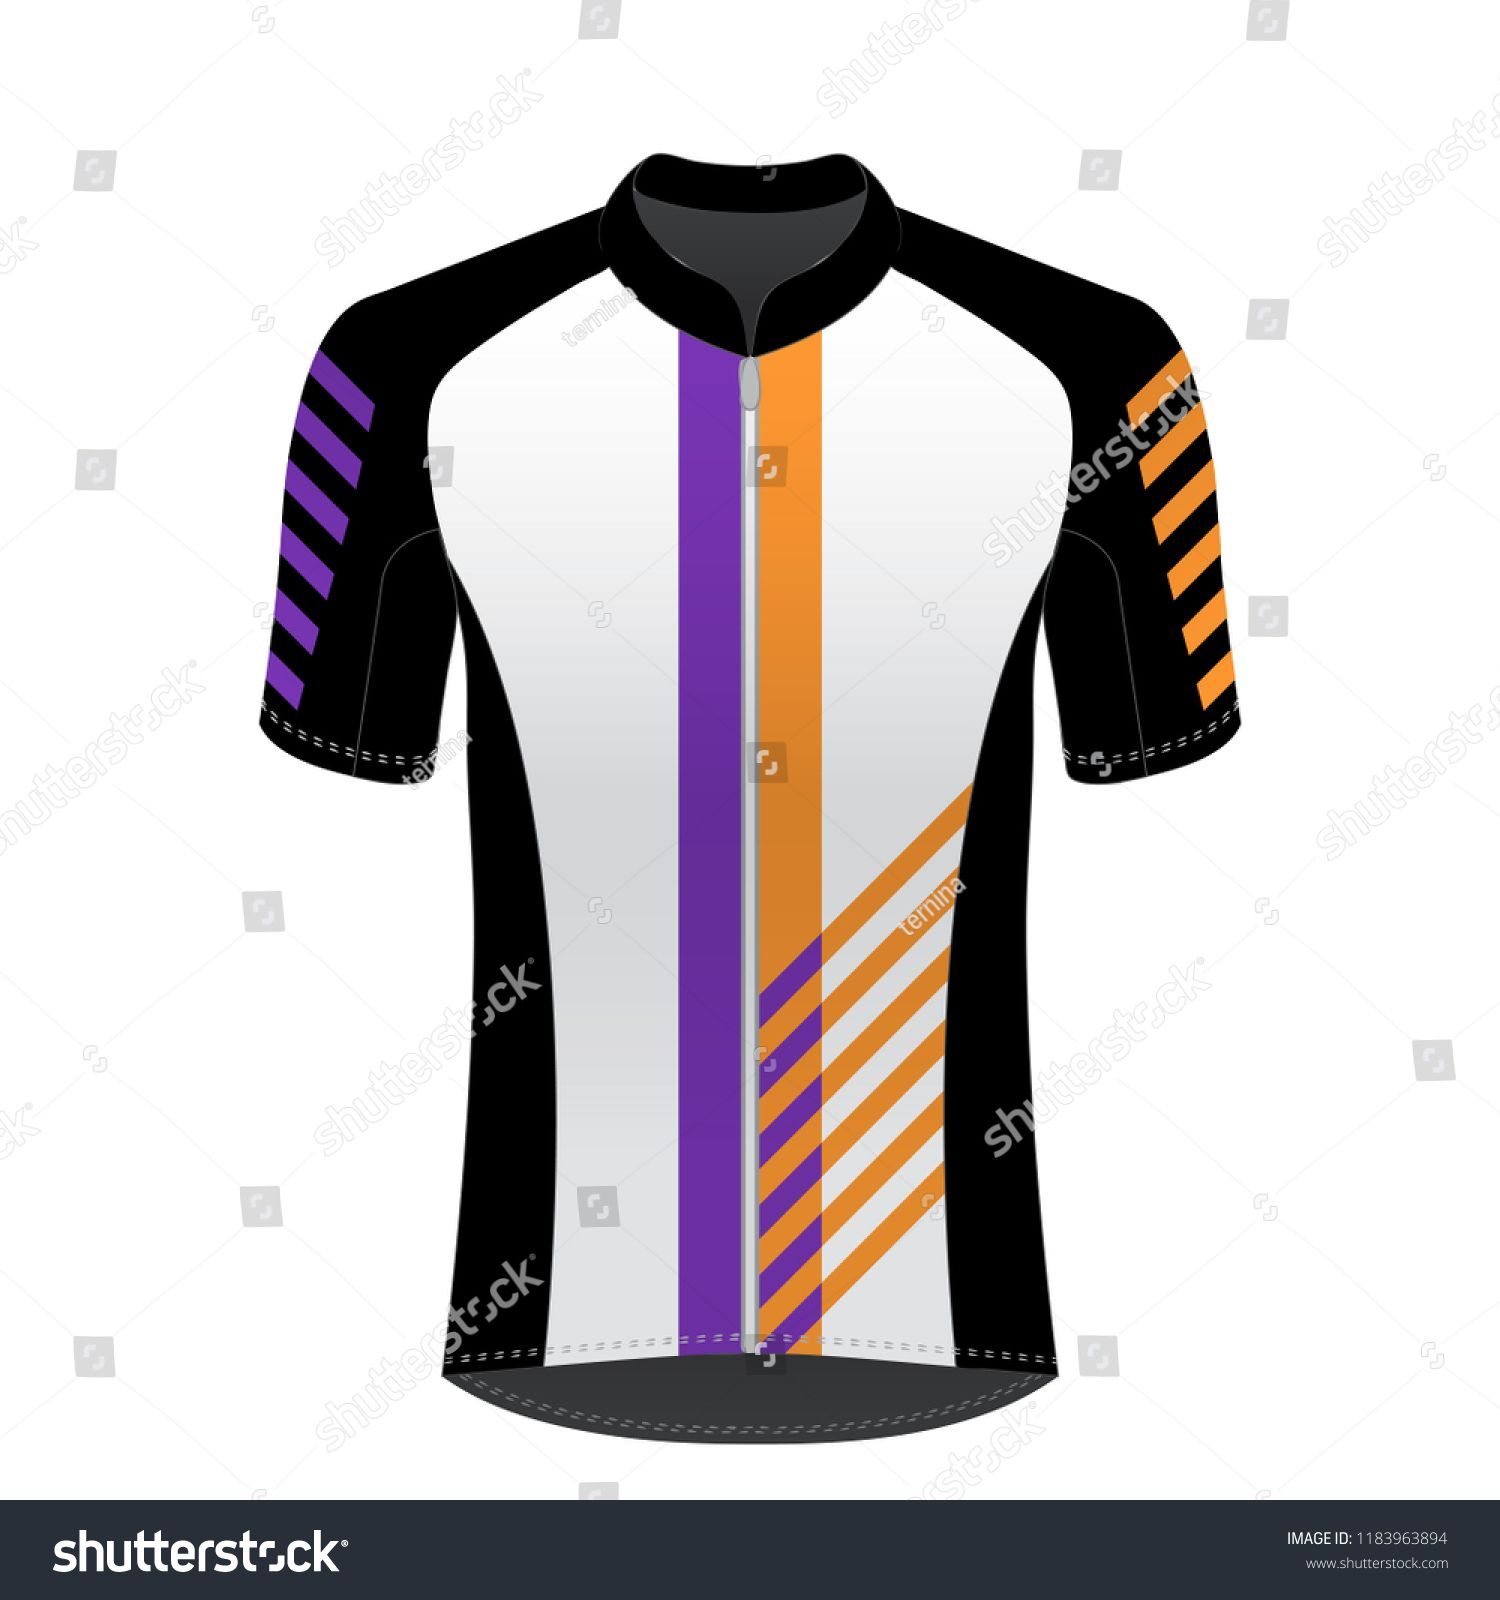 Download The Charming Cycling Jersey Mockup Tshirt Sport Design Stock Vector Throughout Blank Cycling Jersey Template Picture Below Is Segment Of Pejuang